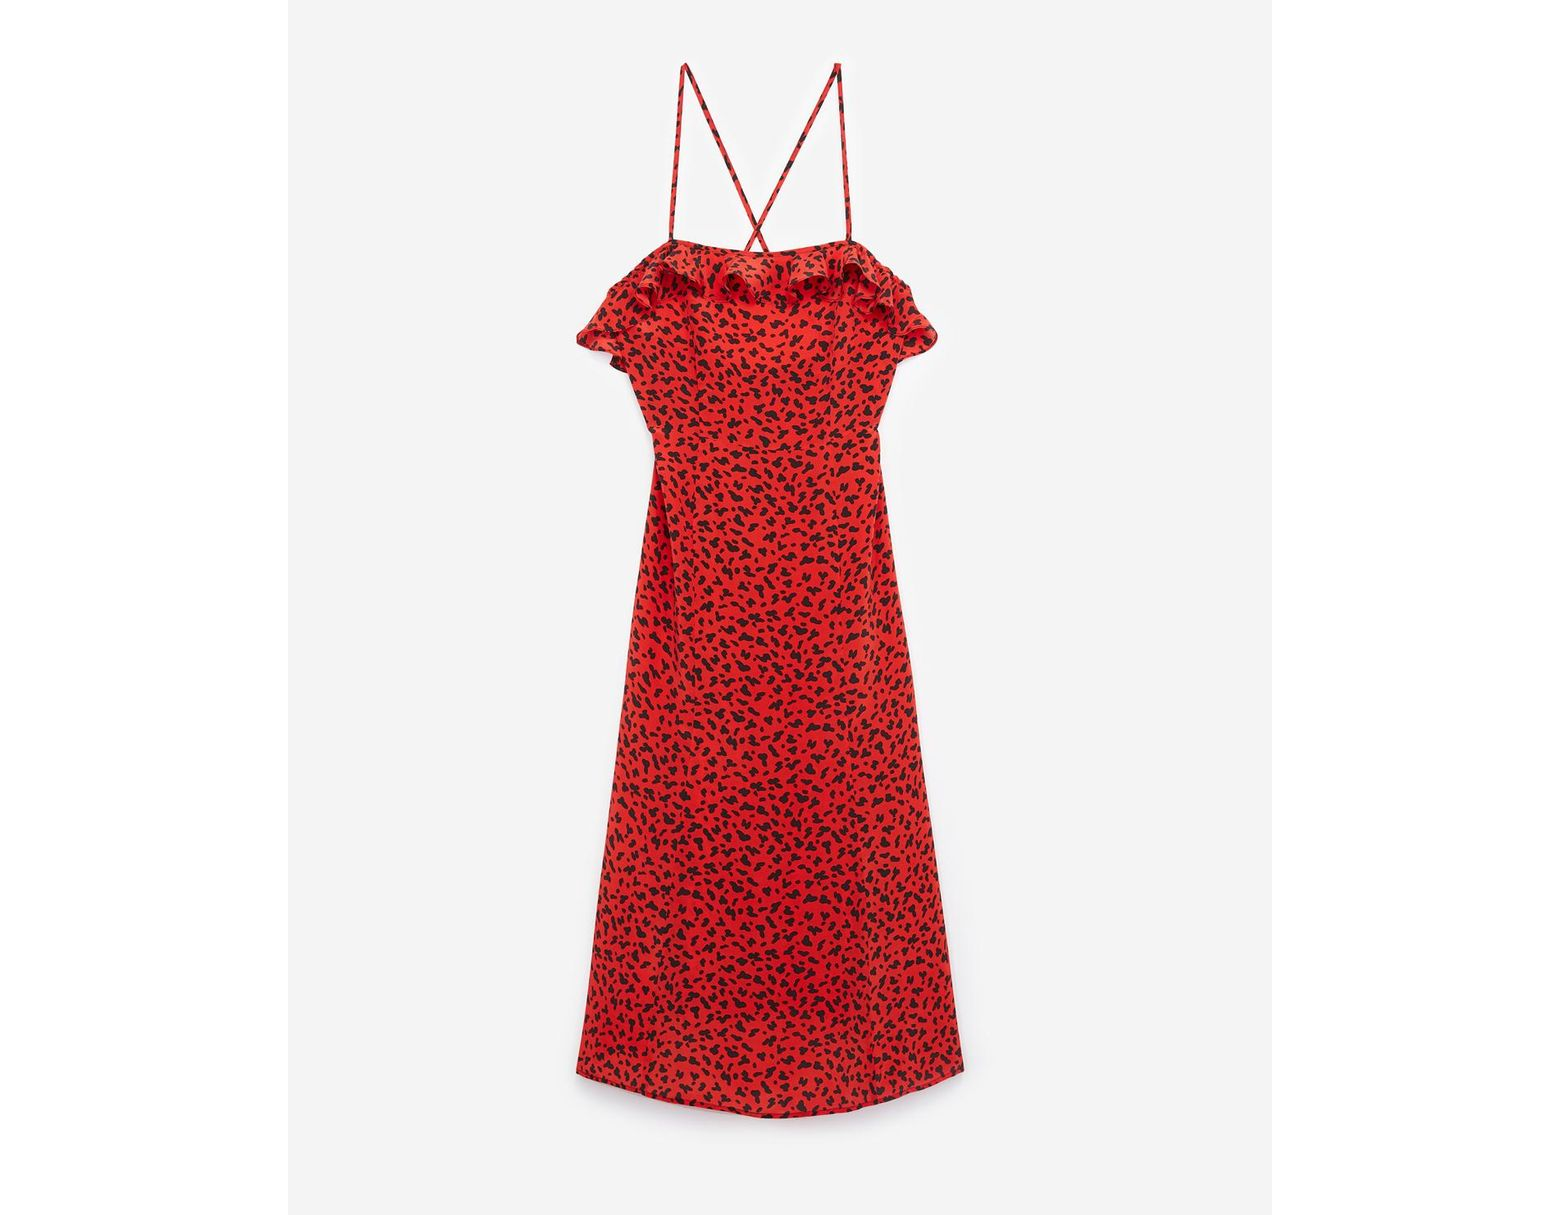 b8e615b1d2 The Kooples Long Red Silk Dress With Leopard Print in Red - Lyst